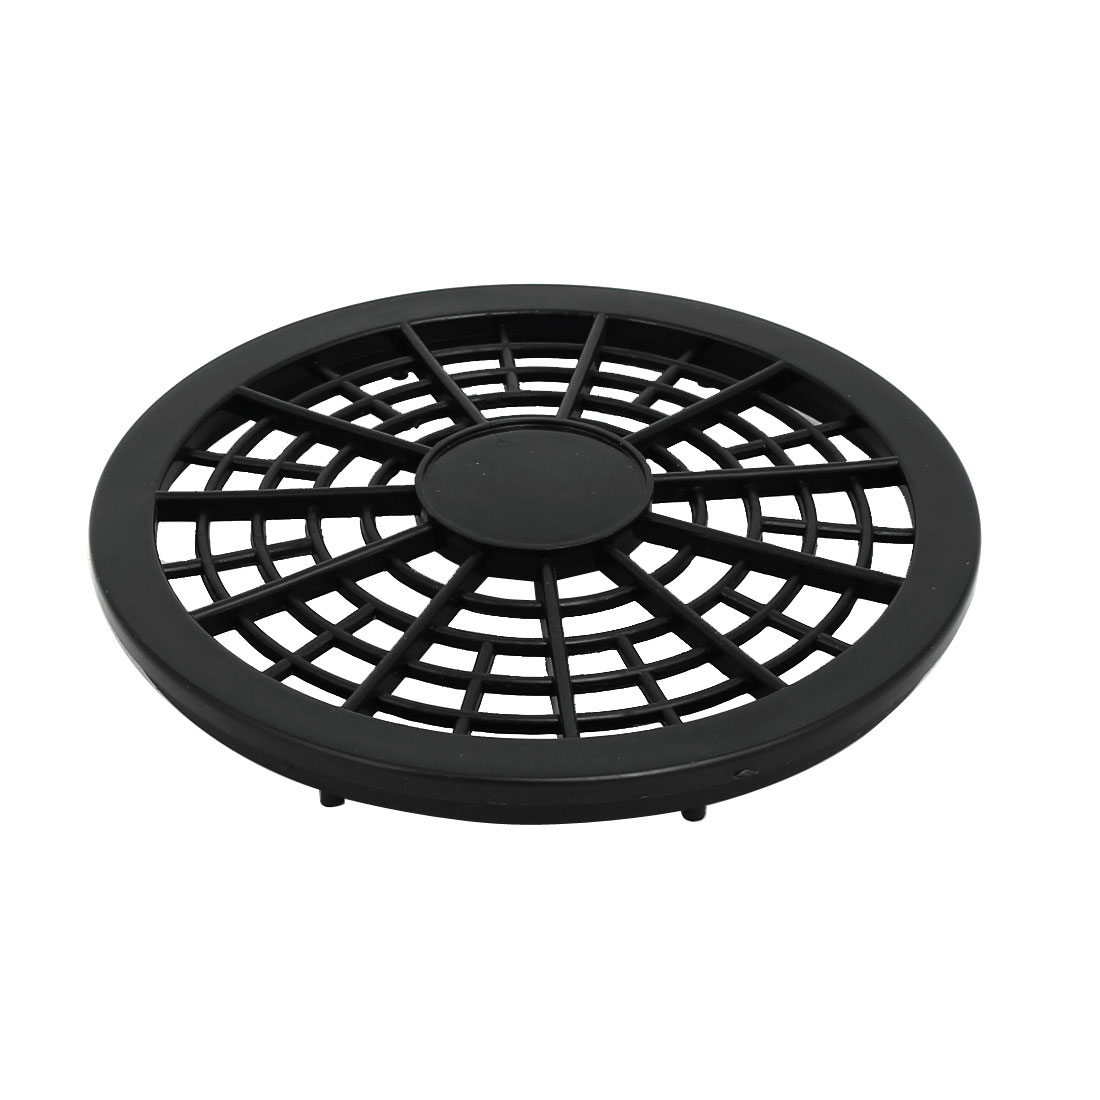 550W/750W 127mm Diameter Plastic Air Compressor Replacement Fan Cover Black